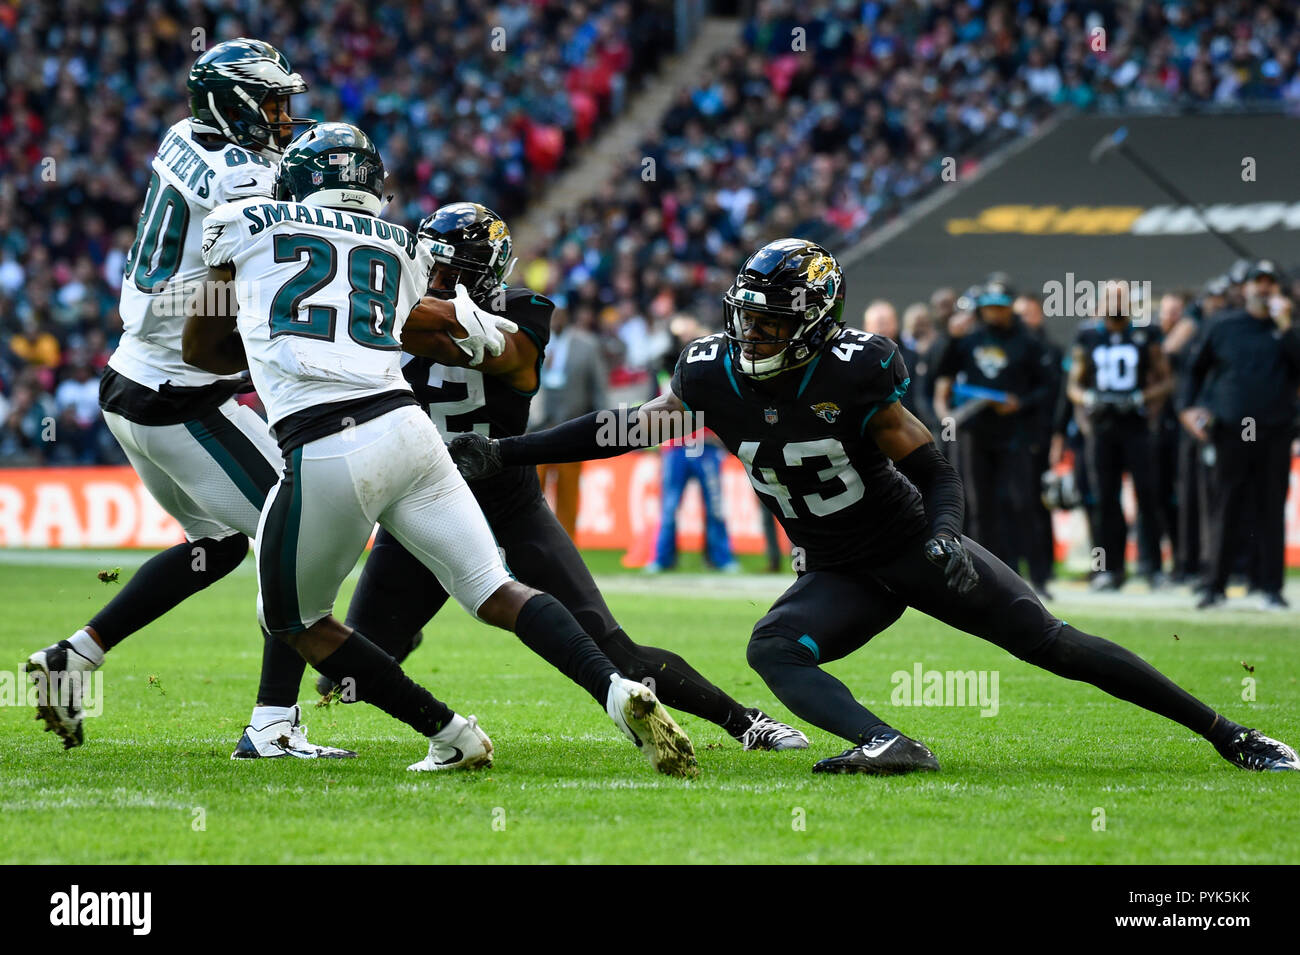 London, UK.  28 October 2018. Eagles running back Wendell Smallwood  (28) runs with the ball. Philadelphia Eagles at Jacksonville Jaguars NFL game at Wembley Stadium, the final game in the NFL London 2018 series. Final score: Eagles 24 Jaguars 18. Credit: Stephen Chung / Alamy Live News - Stock Image